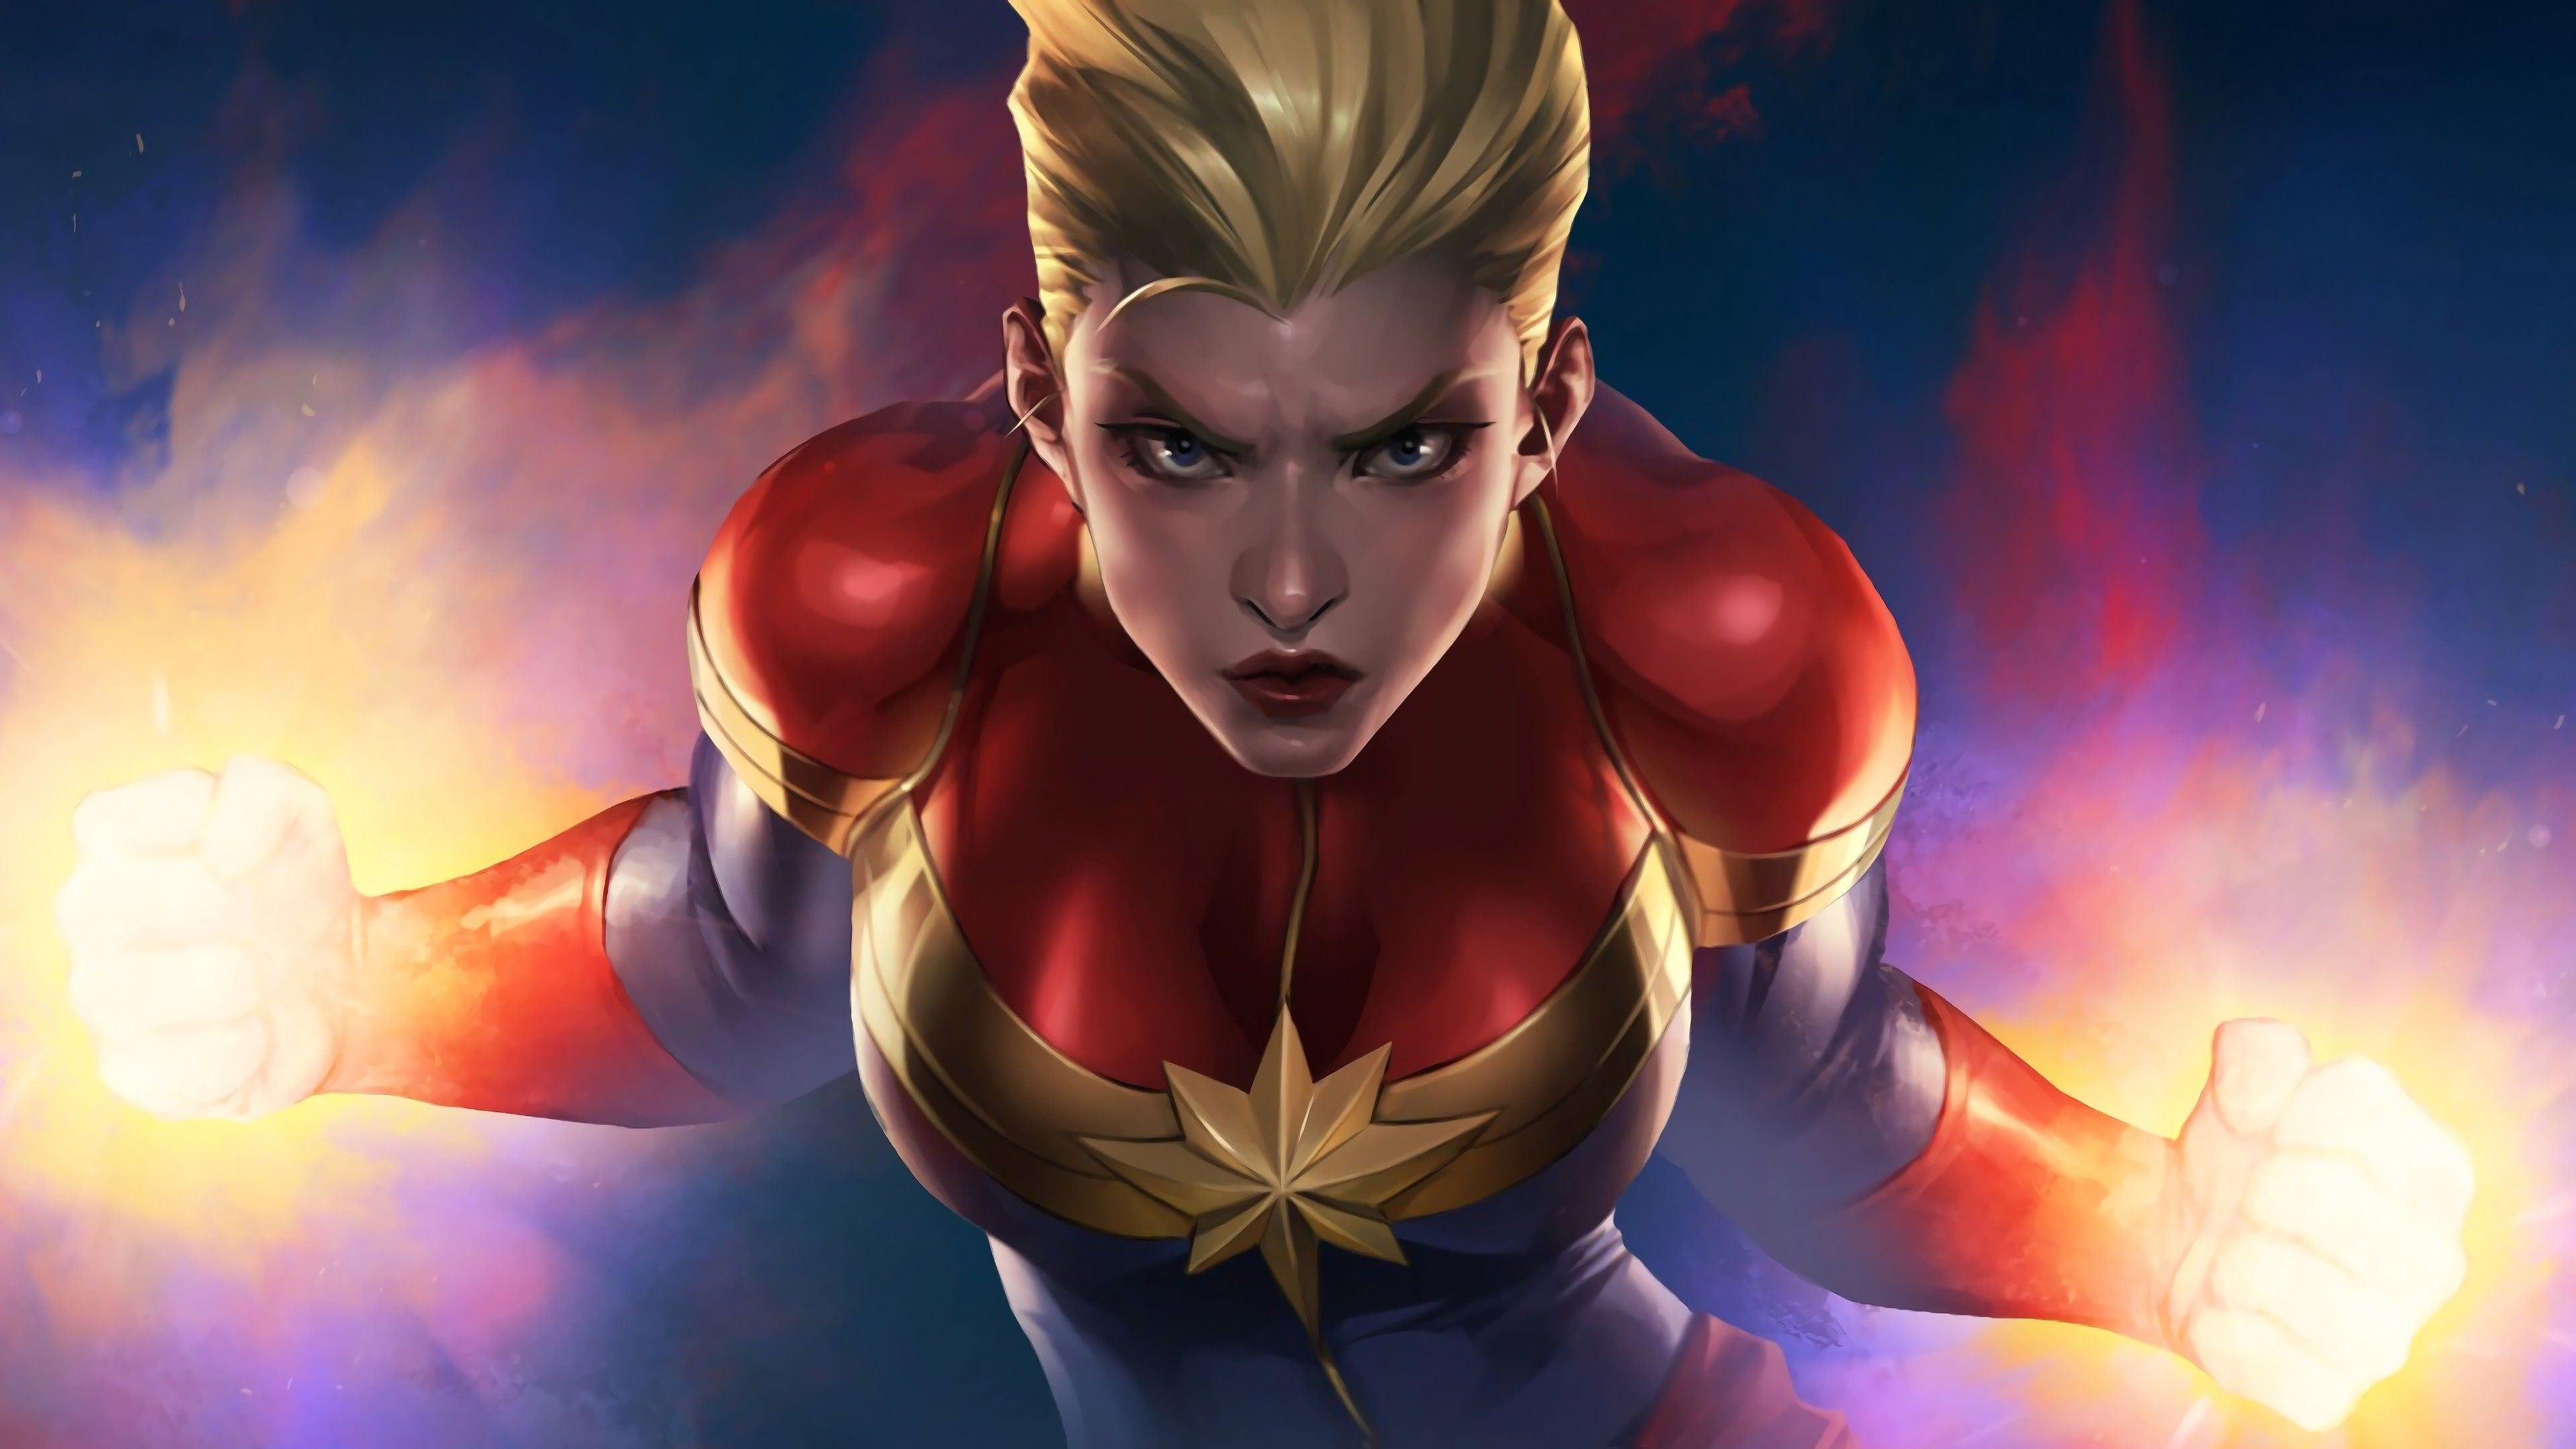 3840x2160 4K Photo of Captain Marvel | HD Wallpapers